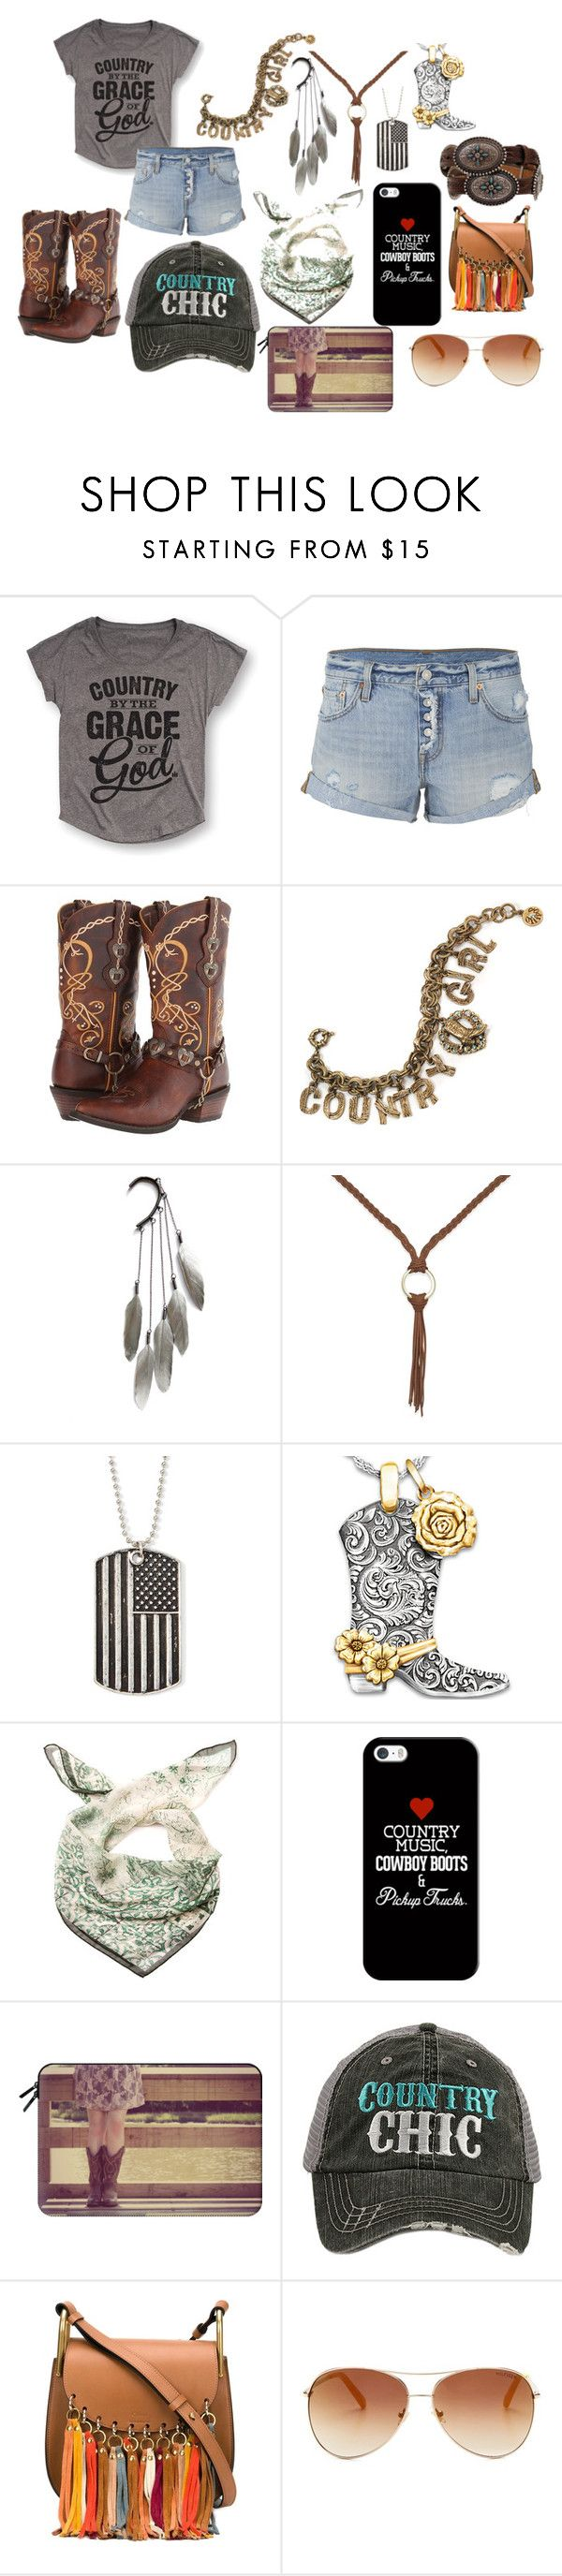 """""""Country Chic"""" by kayley2103 ❤ liked on Polyvore featuring Levi's, Durango, Sweet Romance, Anni Jürgenson, INC International Concepts, Arizona, The Bradford Exchange, Marina D'Este, Casetify and Katydid Collection"""